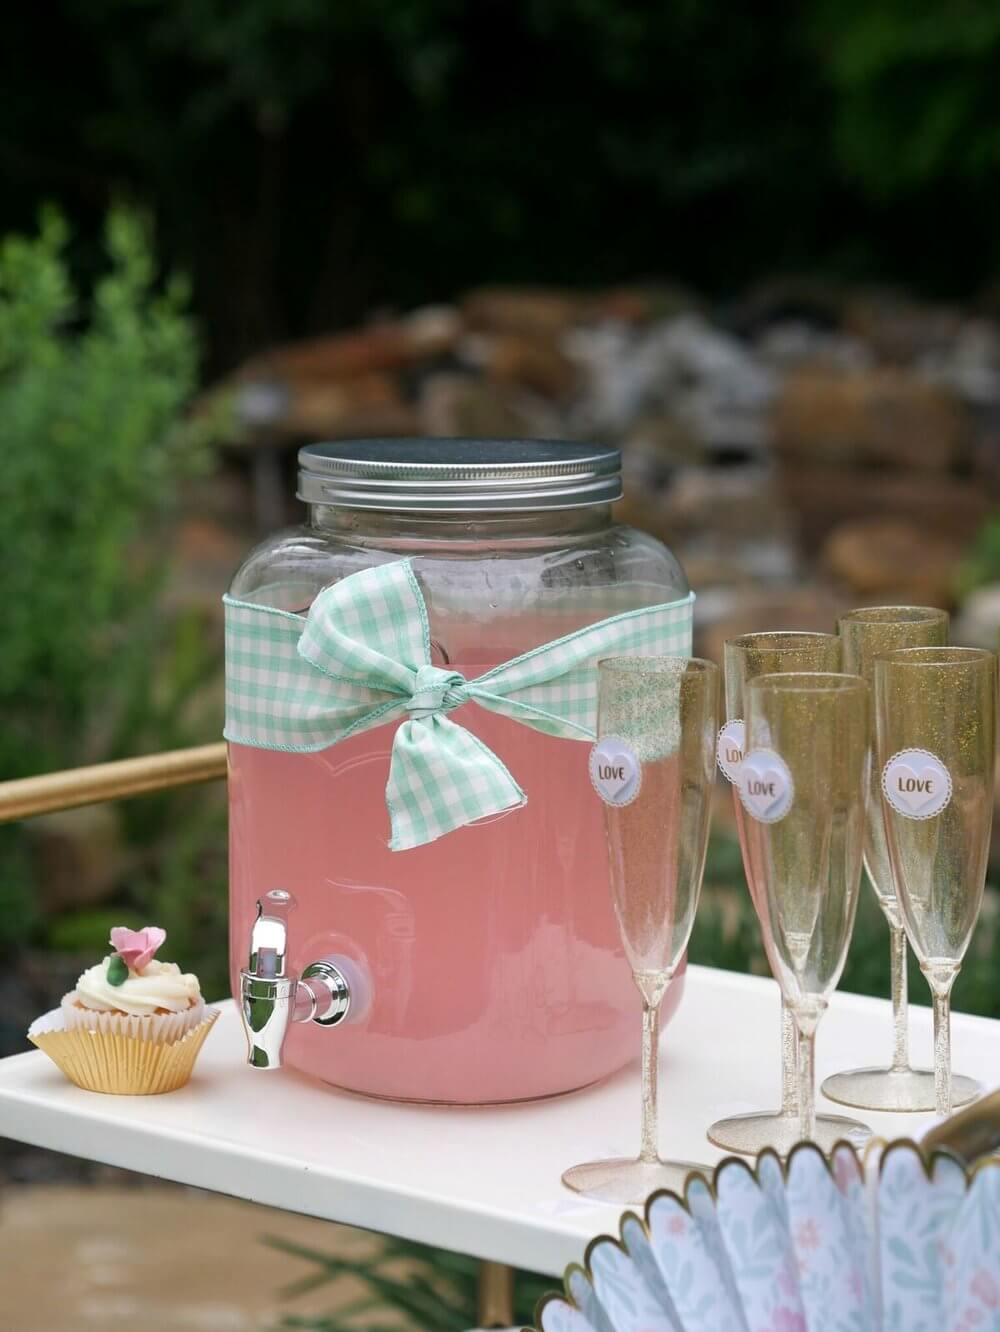 French Cottage Bridal Shower Ideas / Outdoor Bridal Shower ideas and decor / Pastel colors Bridal Shower Ideas / Drink Station for a Bridal Shower / Shabby Chic Bridal Shower Ideas / Shabby Chic Drink Station / Drink Station for Baby Shower / Styled by Carolina from MINT Event Design / www.minteventdesign.com